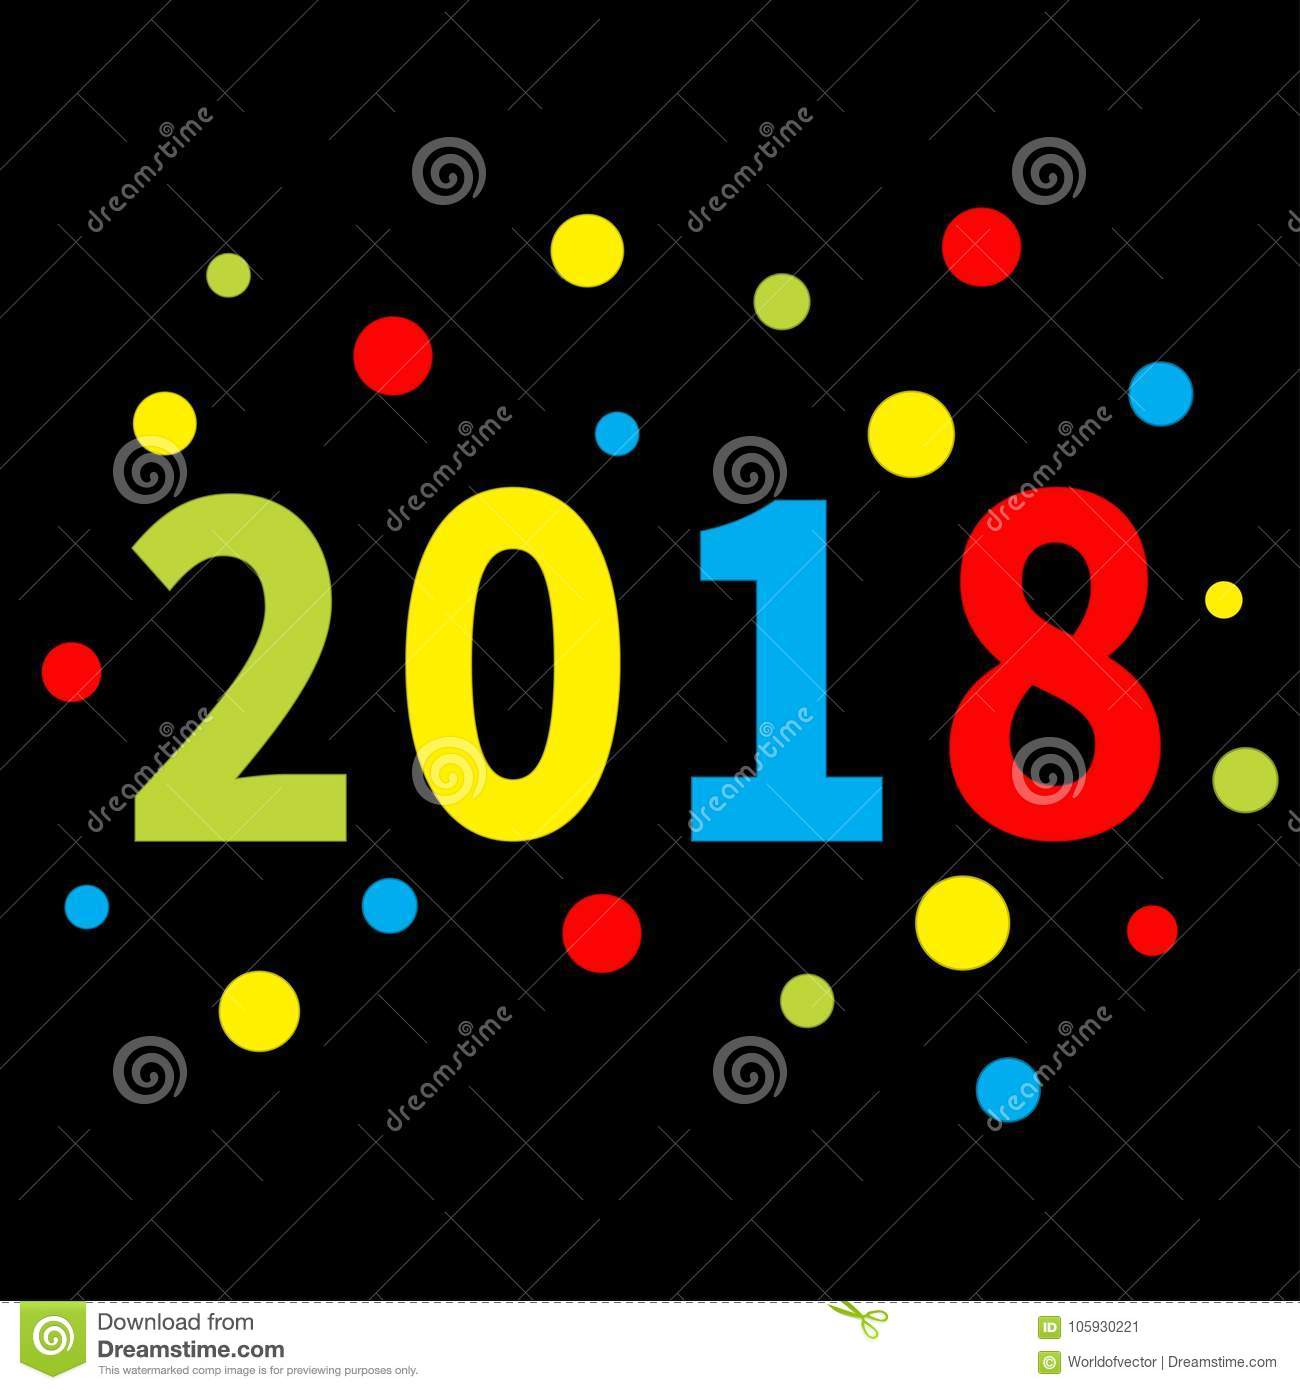 2018 new year colorful round dot template for greeting card template for greeting card calendar presentation flyer leaflet postcard and poster paper kristyandbryce Images